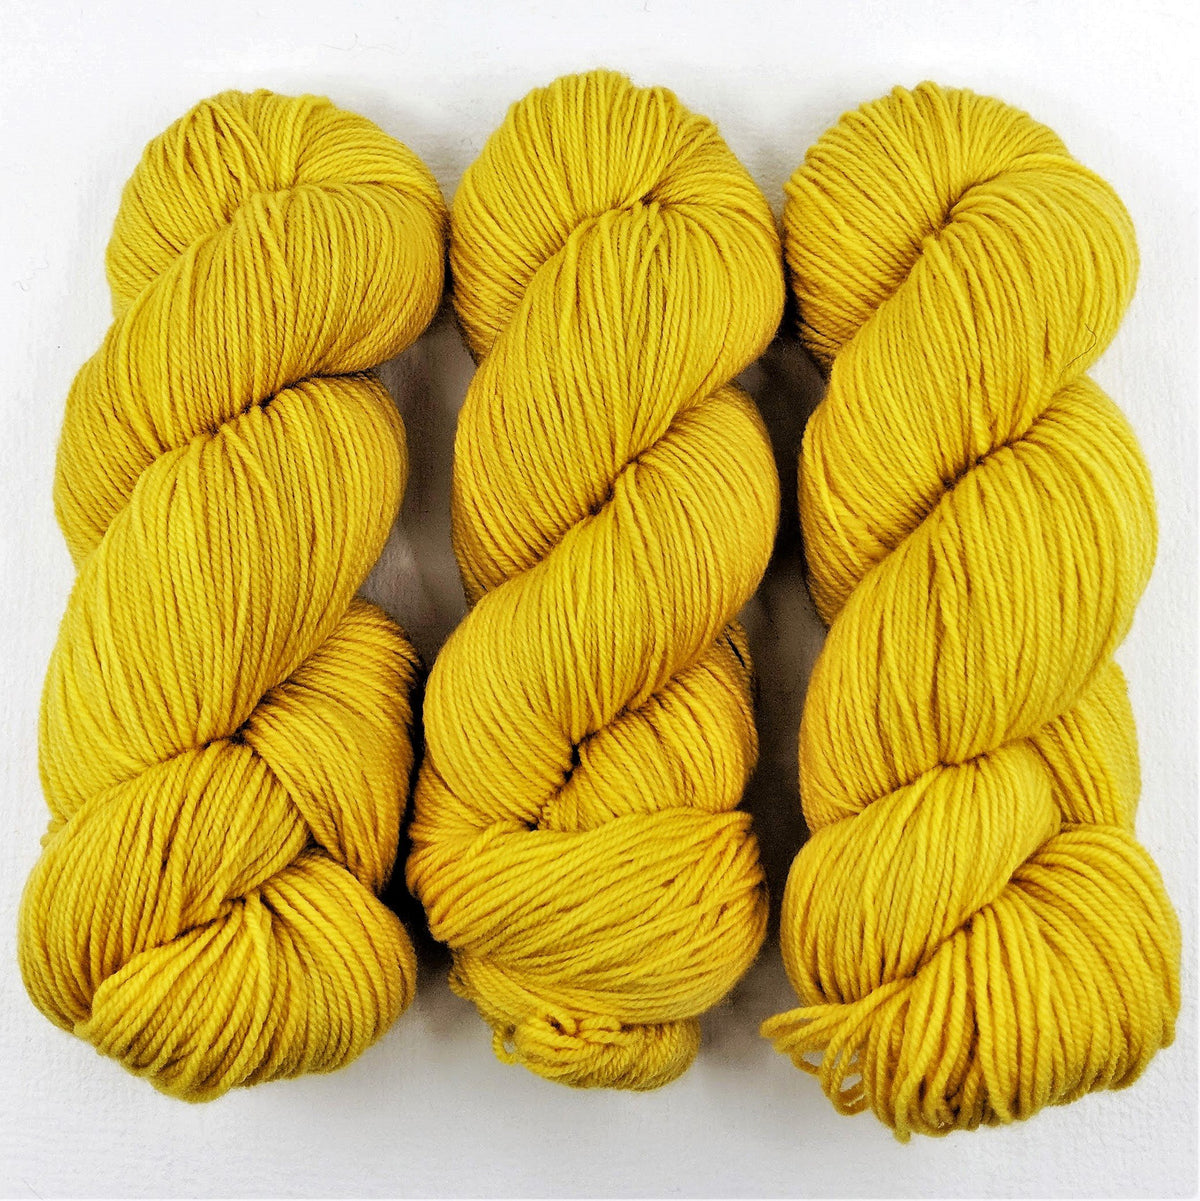 Sunflower in Worsted Weight